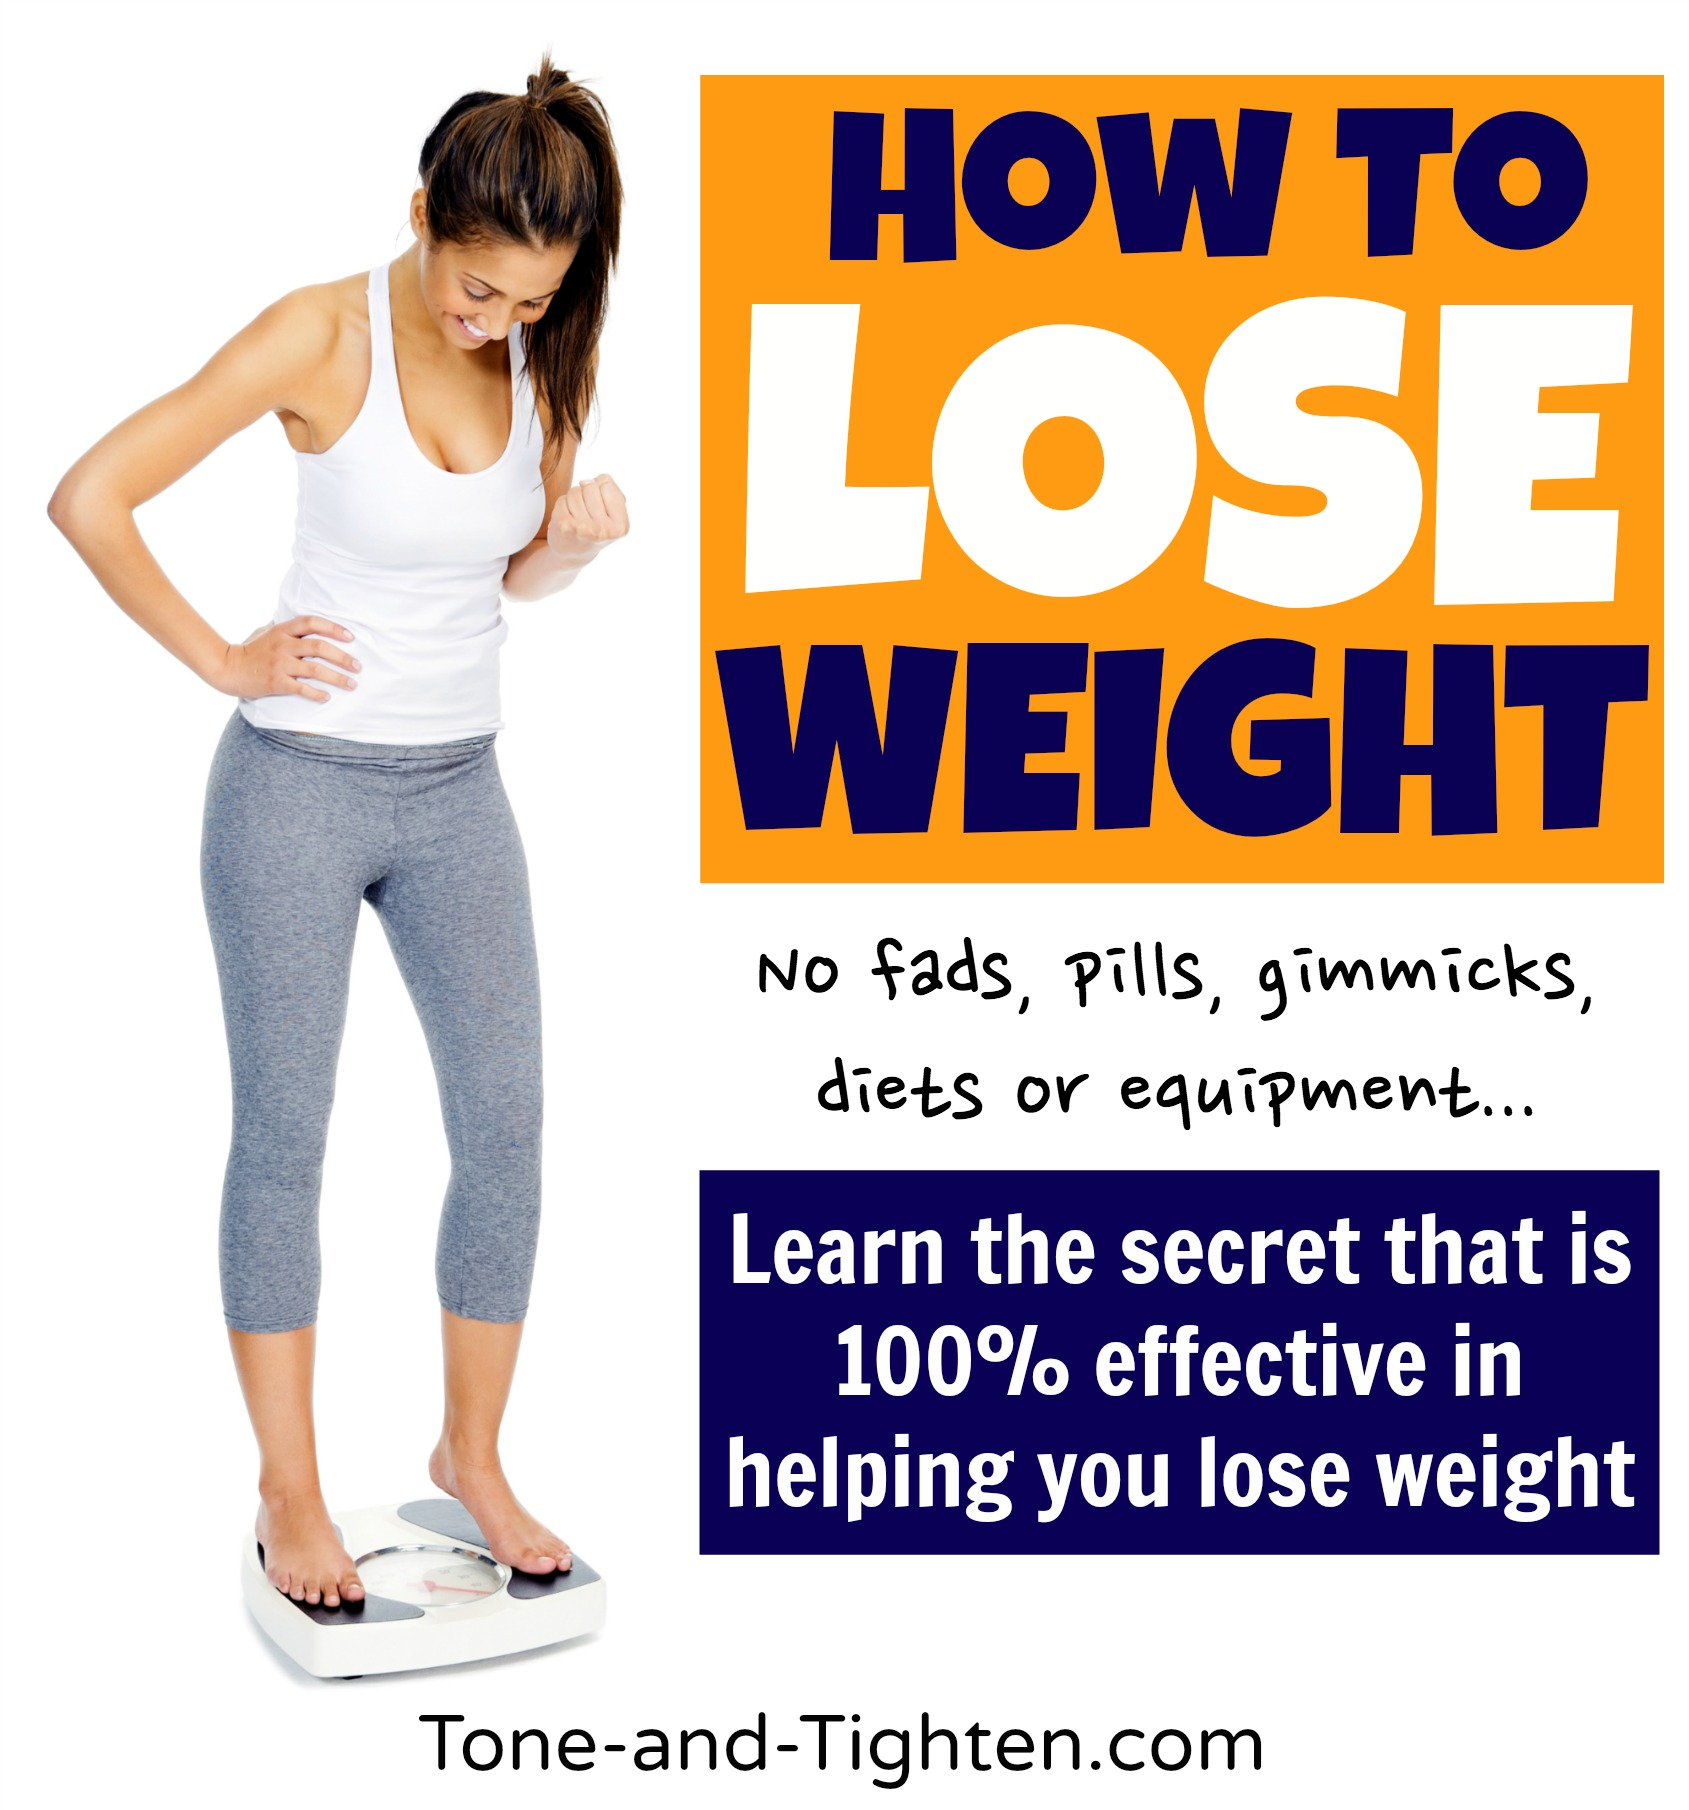 lose weight Boost your metabolism and start to lose weight with diet plans, workouts, and weight loss tips that will help you burn more calories than you're taking in.